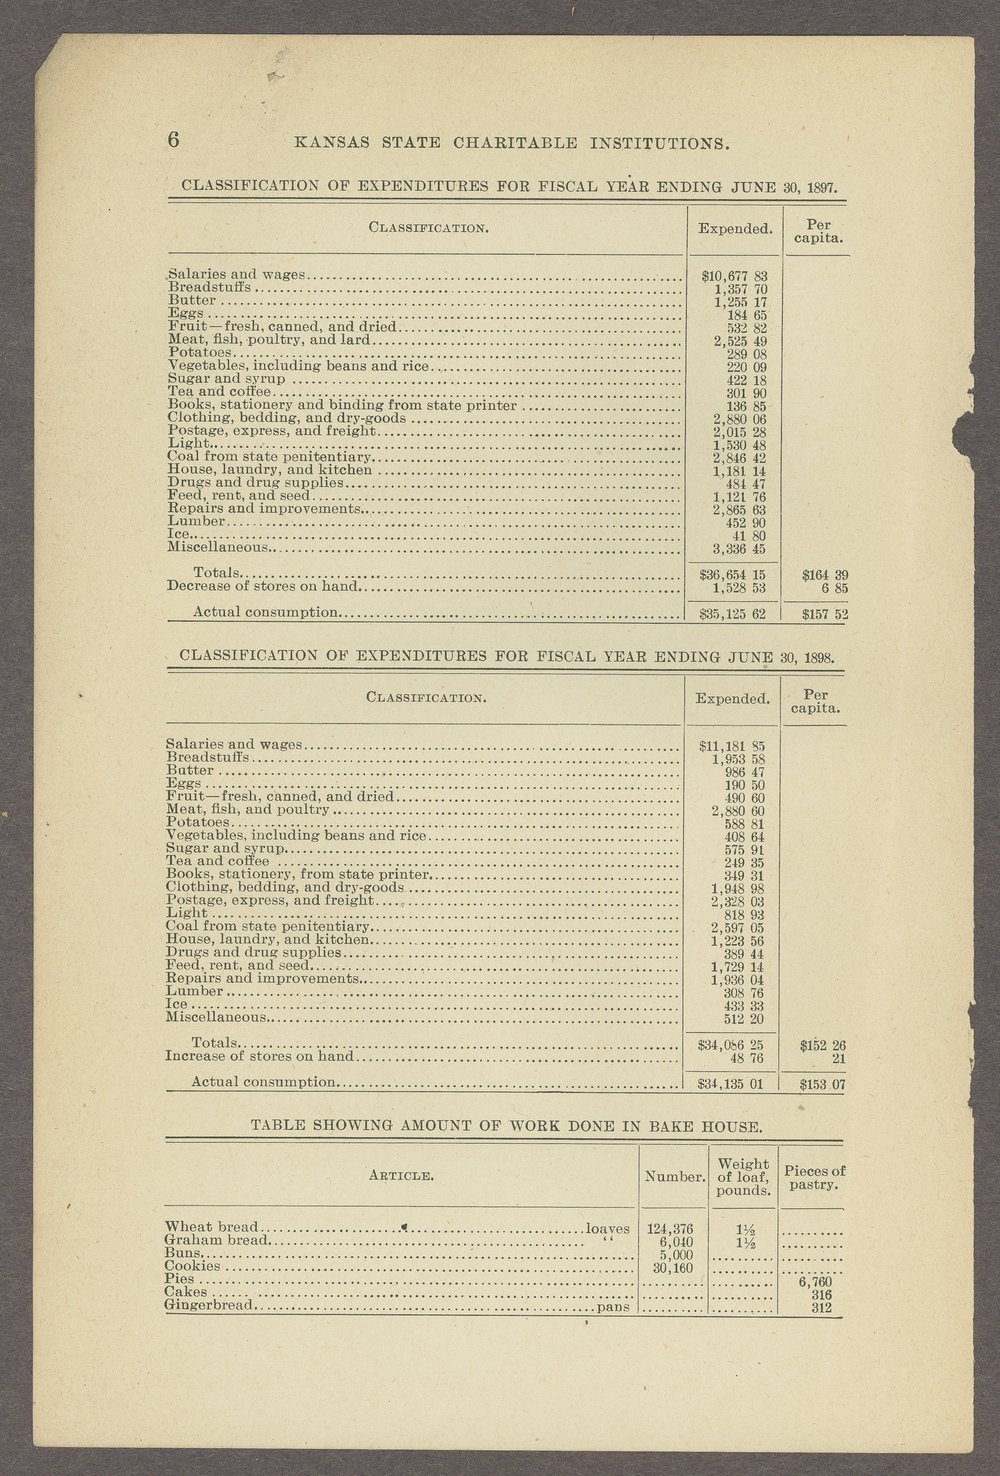 Biennial report of the State Reform School,1898 - 6